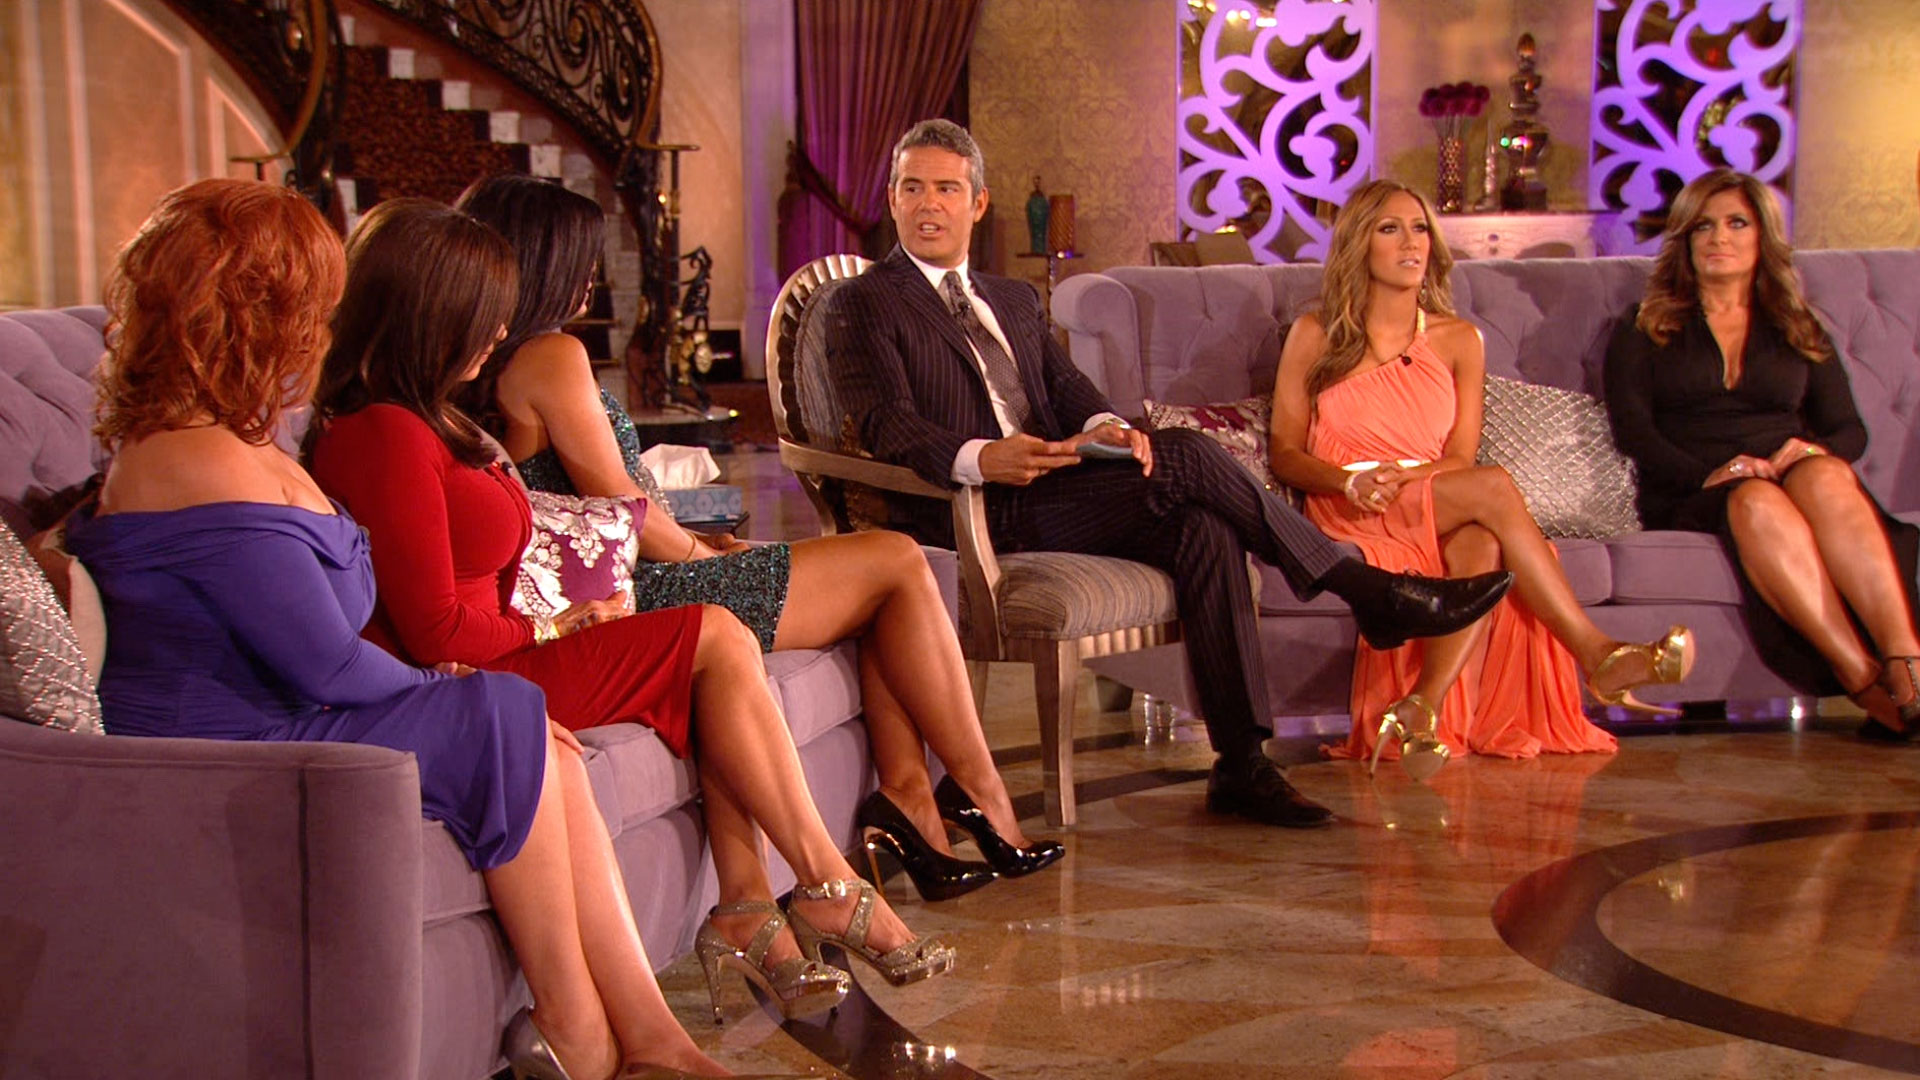 real housewives of new jersey season 5 episode 3 delishows